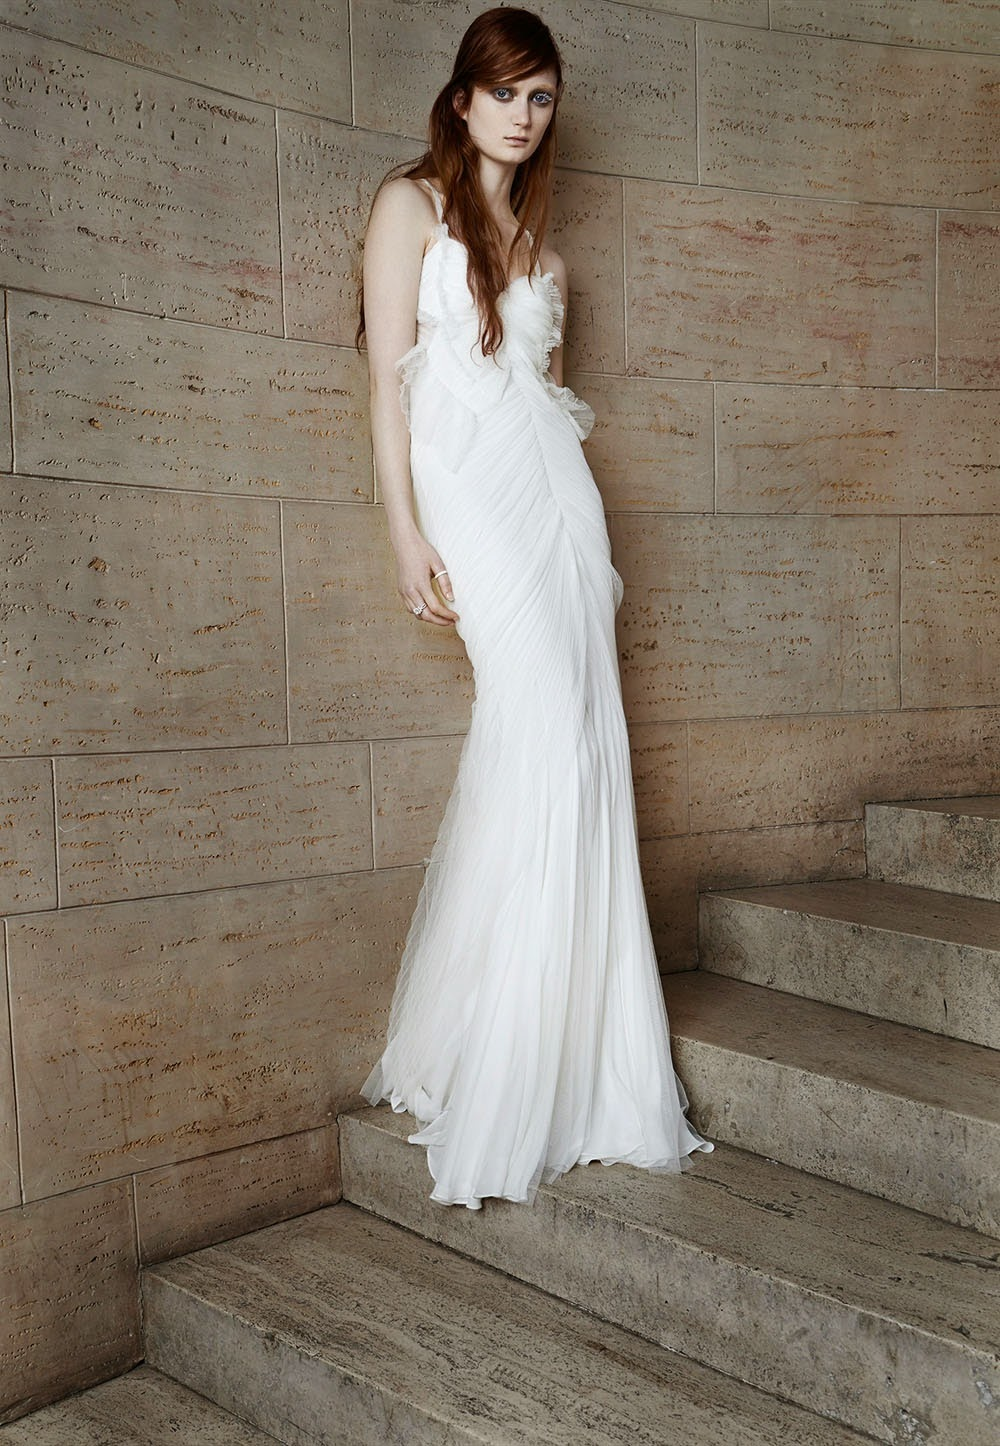 Vera wang spring 2015 wedding dresses world of bridal for Where to buy vera wang wedding dresses